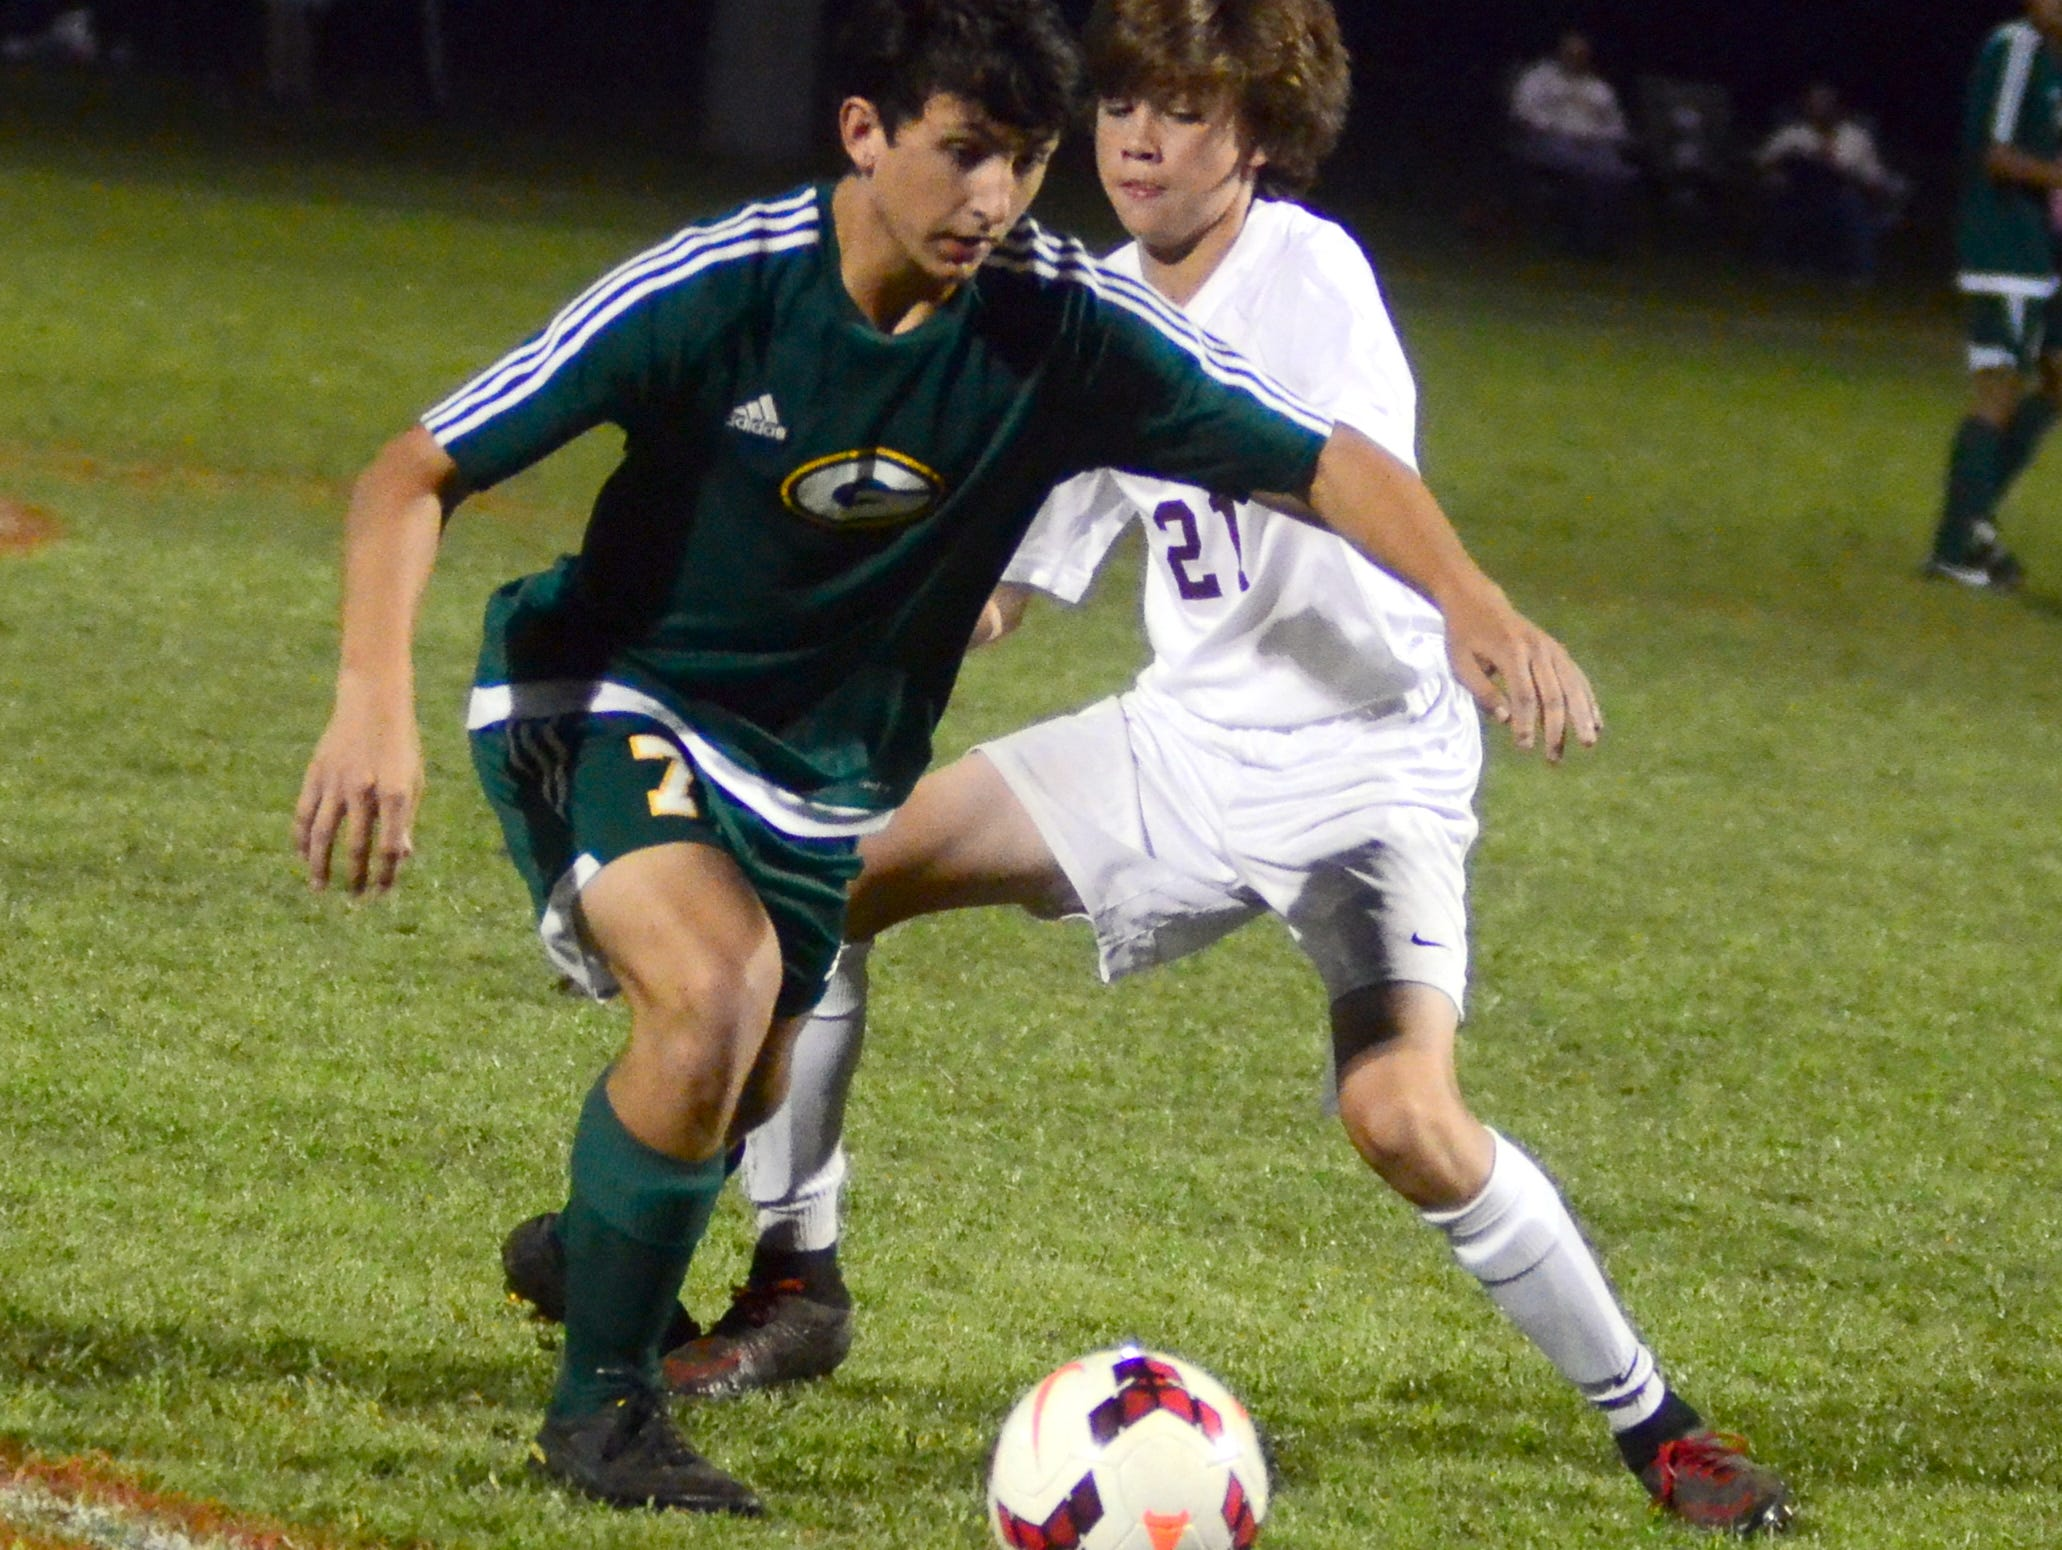 Gallatin High junior Noah Lawler maneuvers past Station Camp sophomore Caden McGranaghan during first-half action.